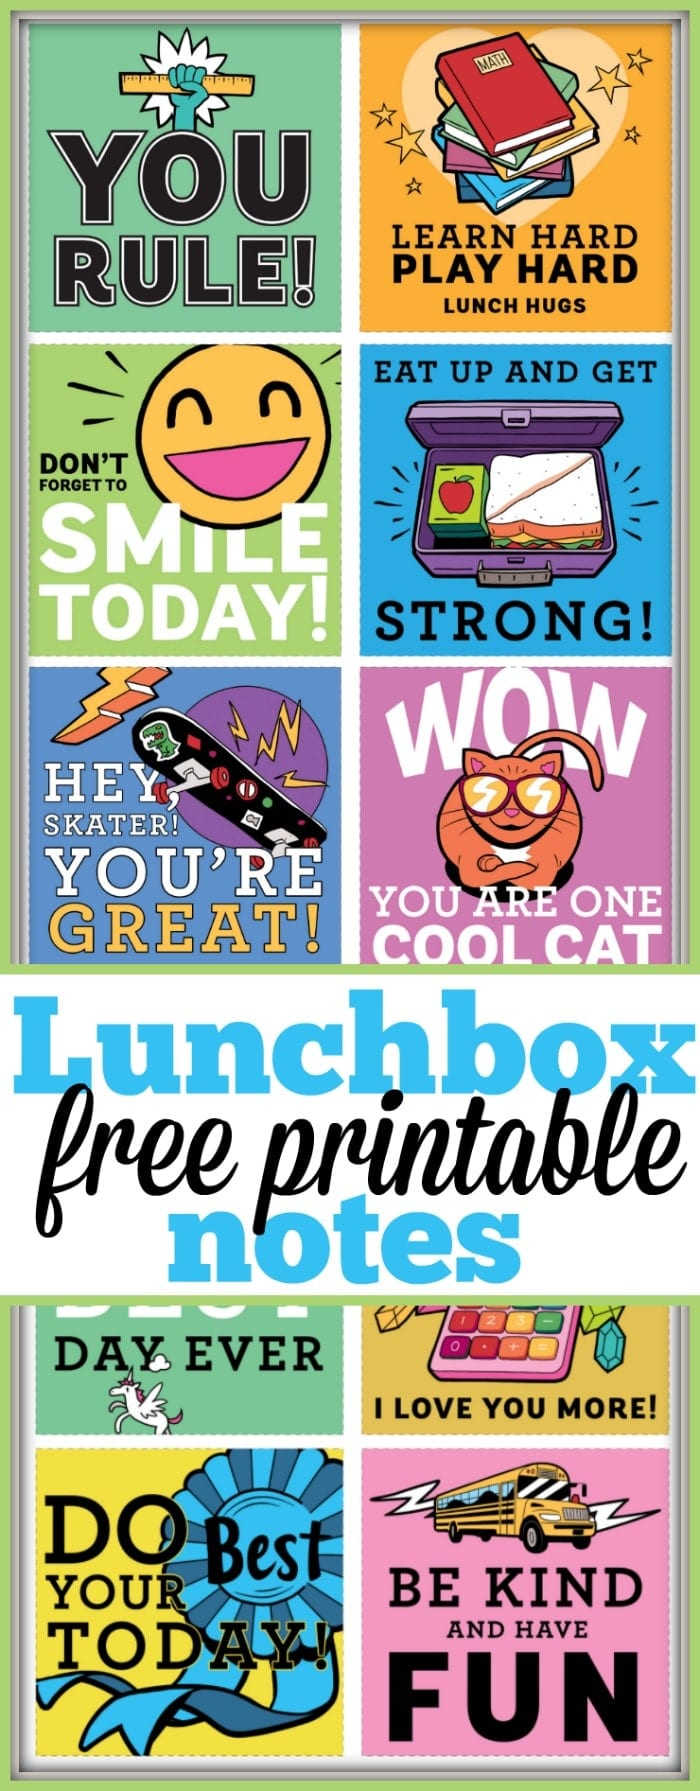 Here are a bunch of free printable lunchbox notes you can cut out and include in your child's lunch boxes to put a smile on their face each and every day! Great for boys and girls and all ages, it is fun to include a little positivity they can read in the middle of the day to keep them going. #lunchbox #notes #free #printables #freeprintables #boys #girls